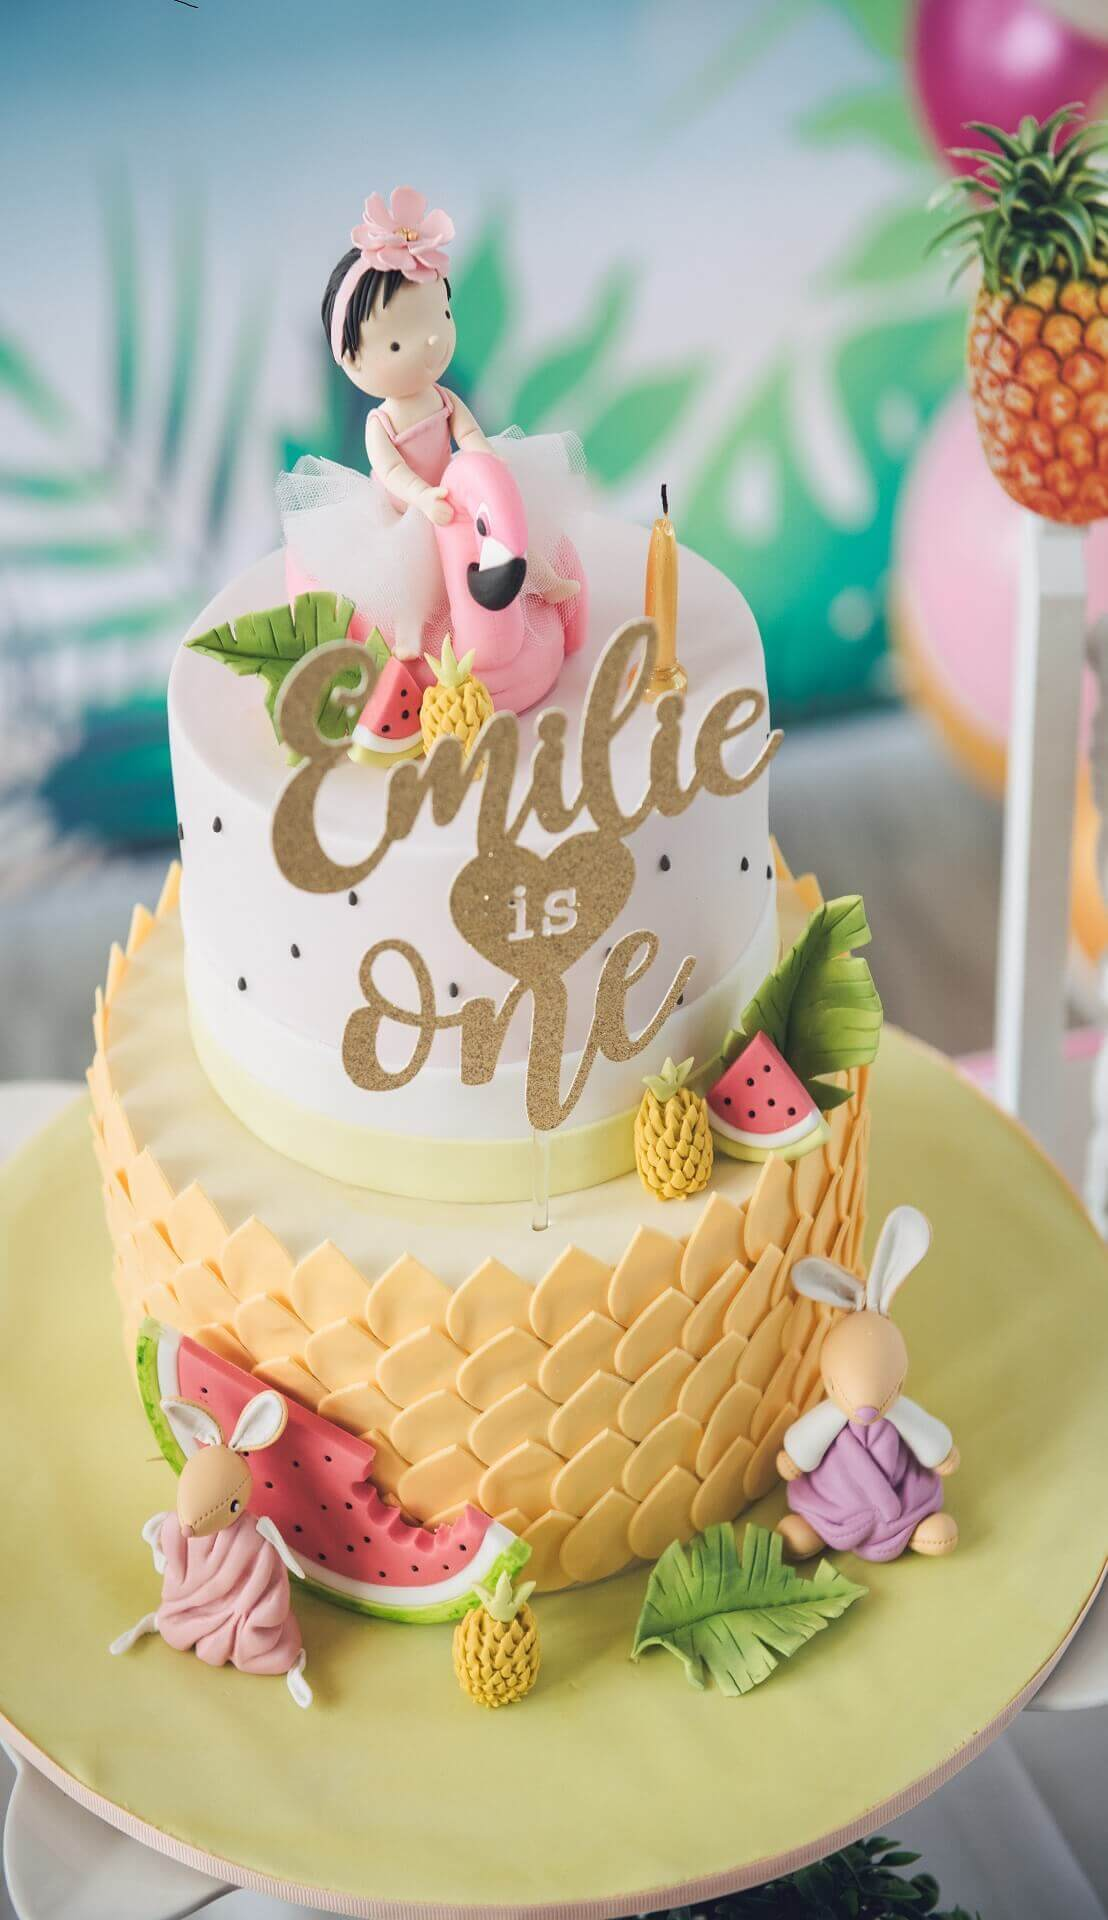 Sugar & Spice Events -  Emilie's 1st Birthday Cake